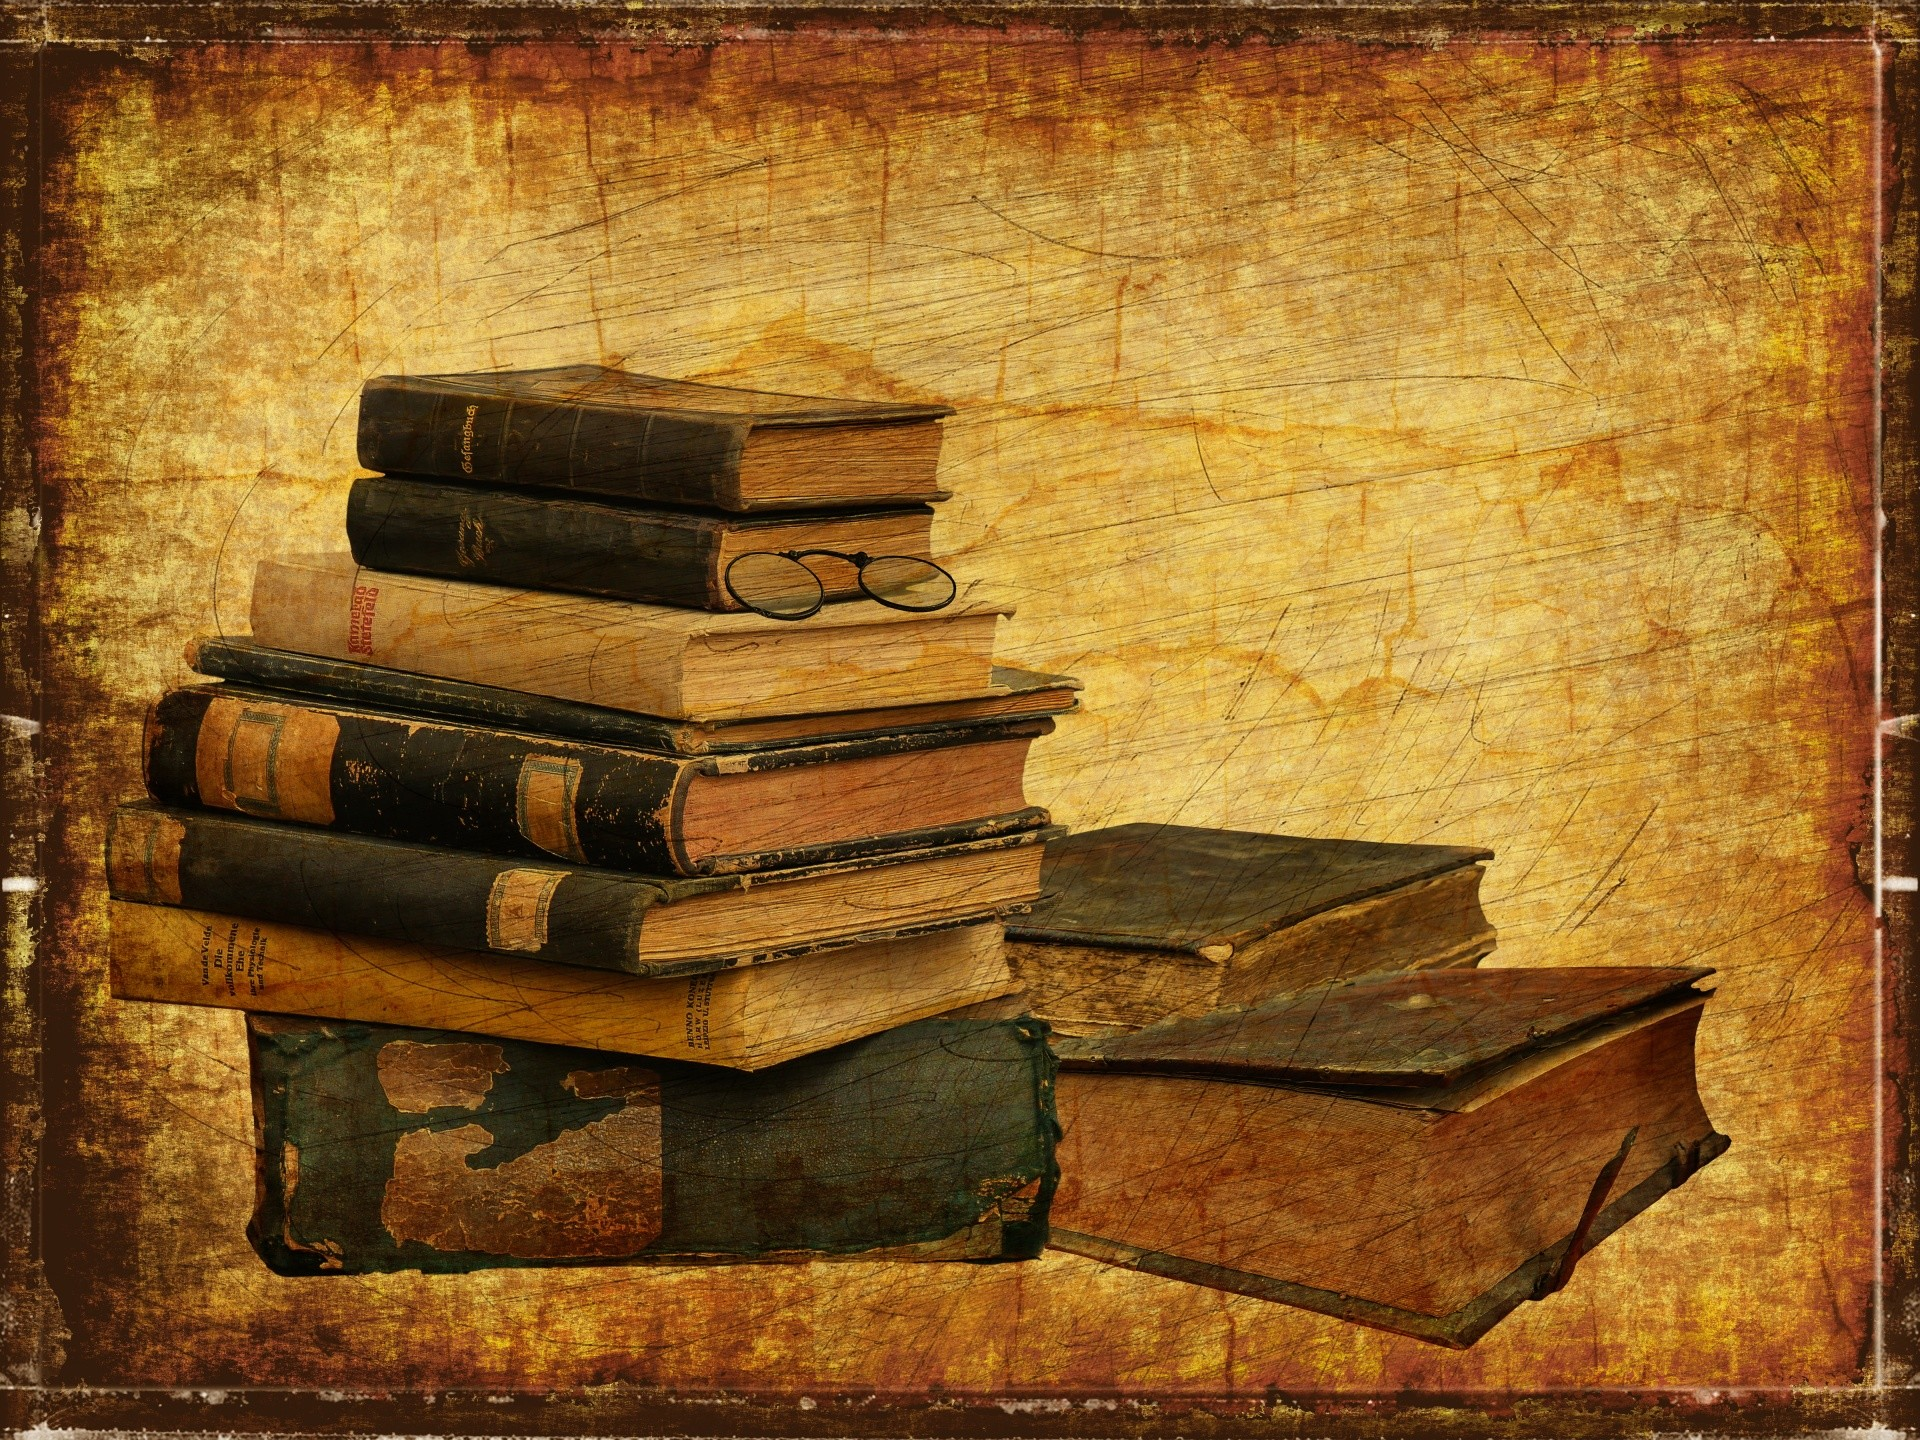 1920x1440, Vintage Photography Book Wallpapers Hd - Vintage Old Book Background - HD Wallpaper